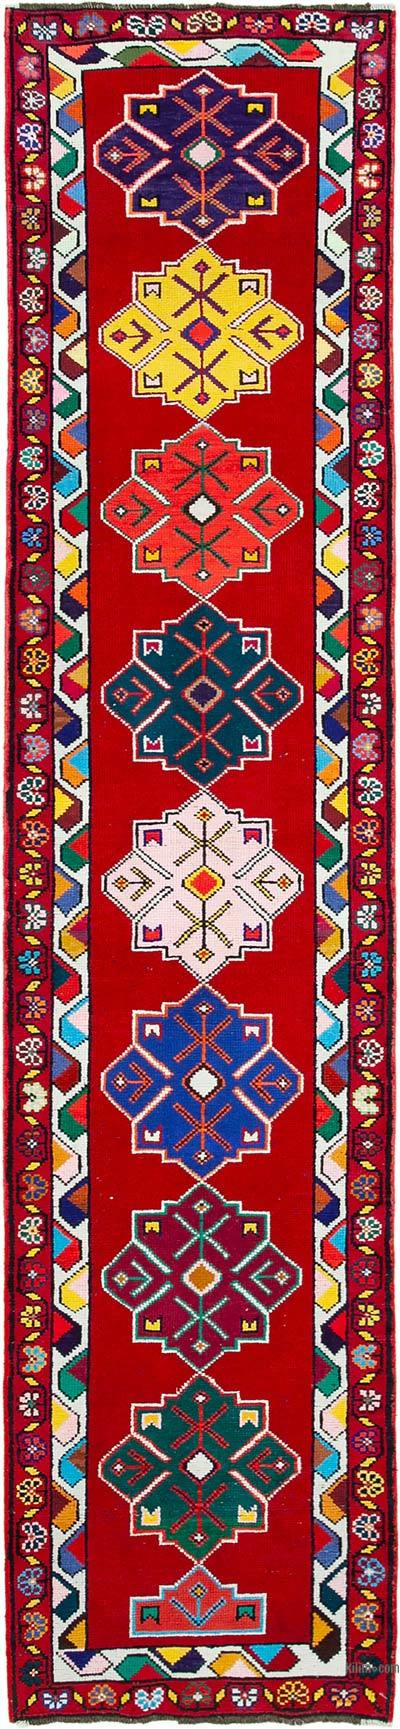 "Vintage Turkish Runner Rug - 2' 9"" x 12' 2"" (33 in. x 146 in.)"